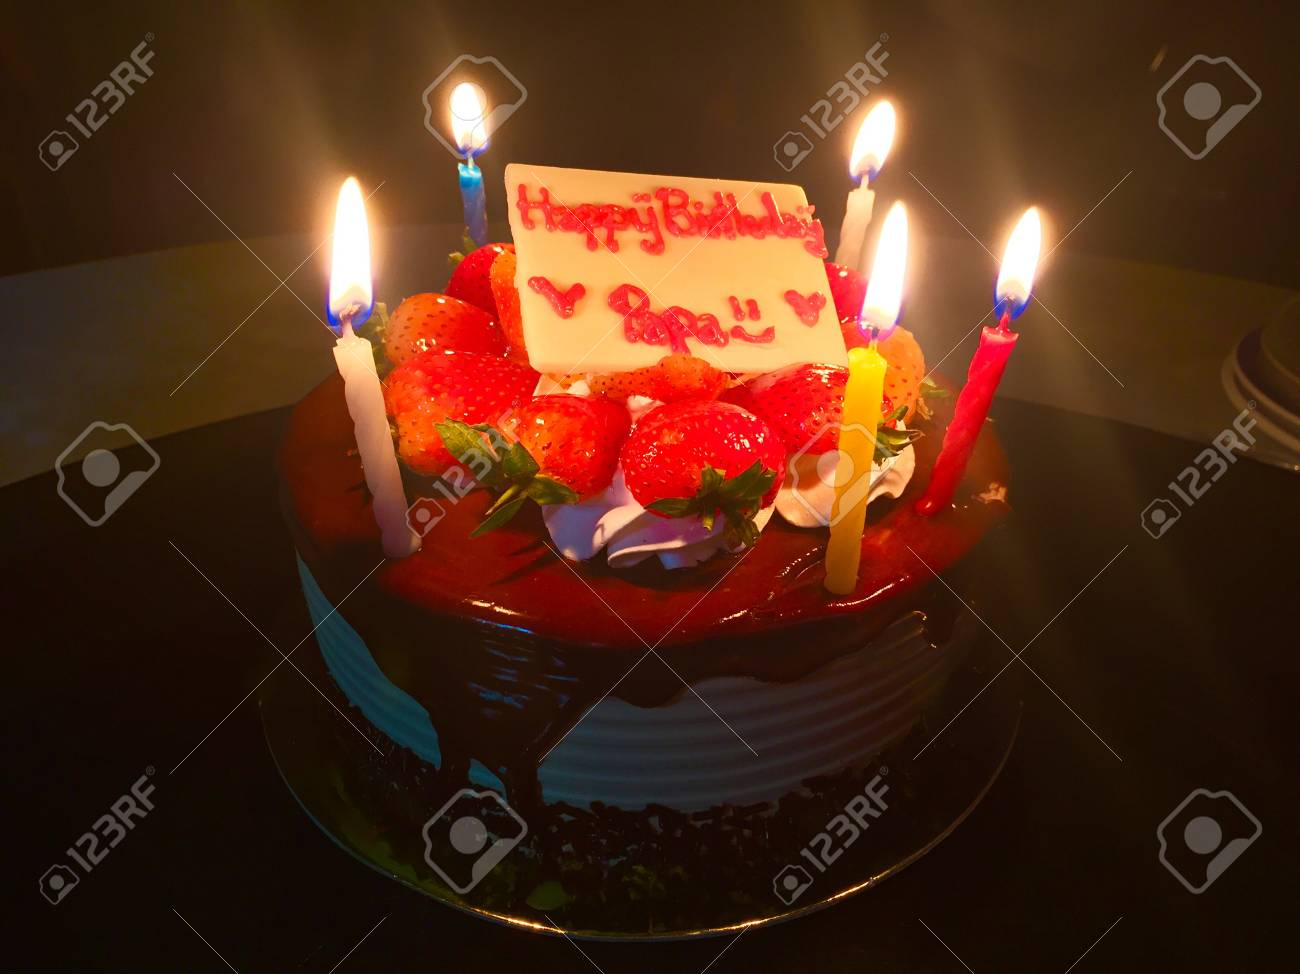 Happy Birthday Dad Strawberry Cake With Candle Light In The Dark Stock Photo